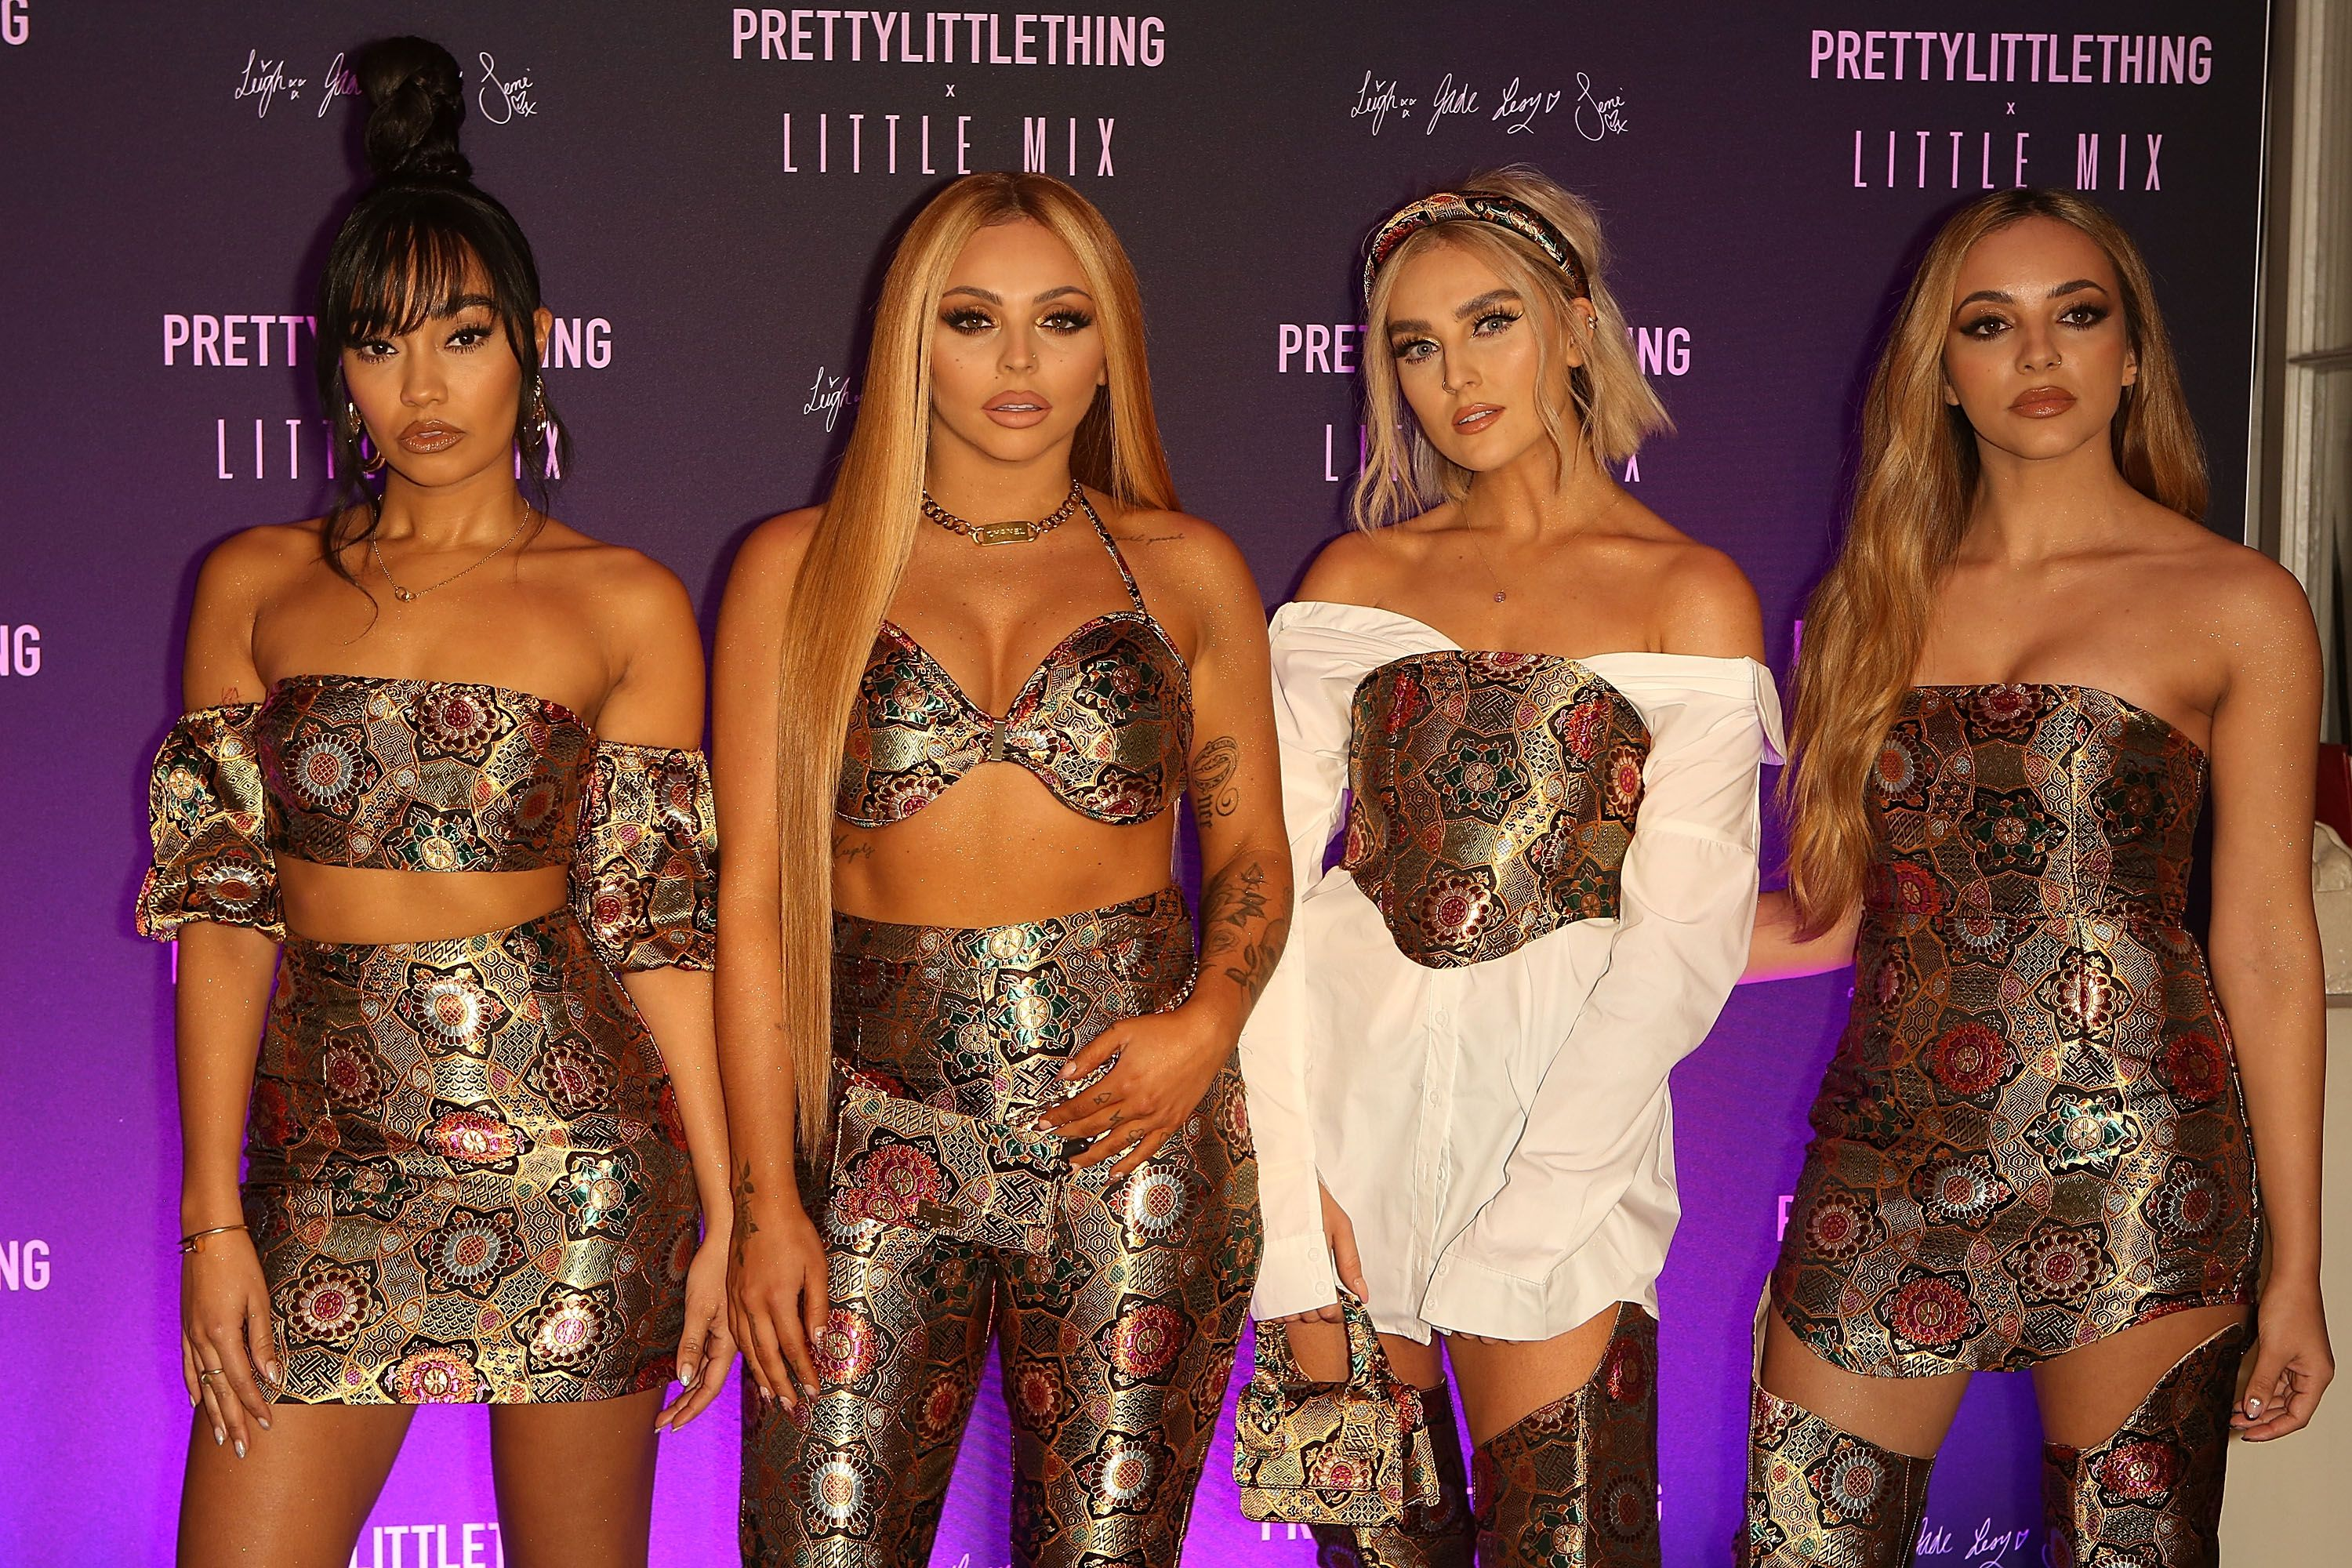 Little Mix at an event